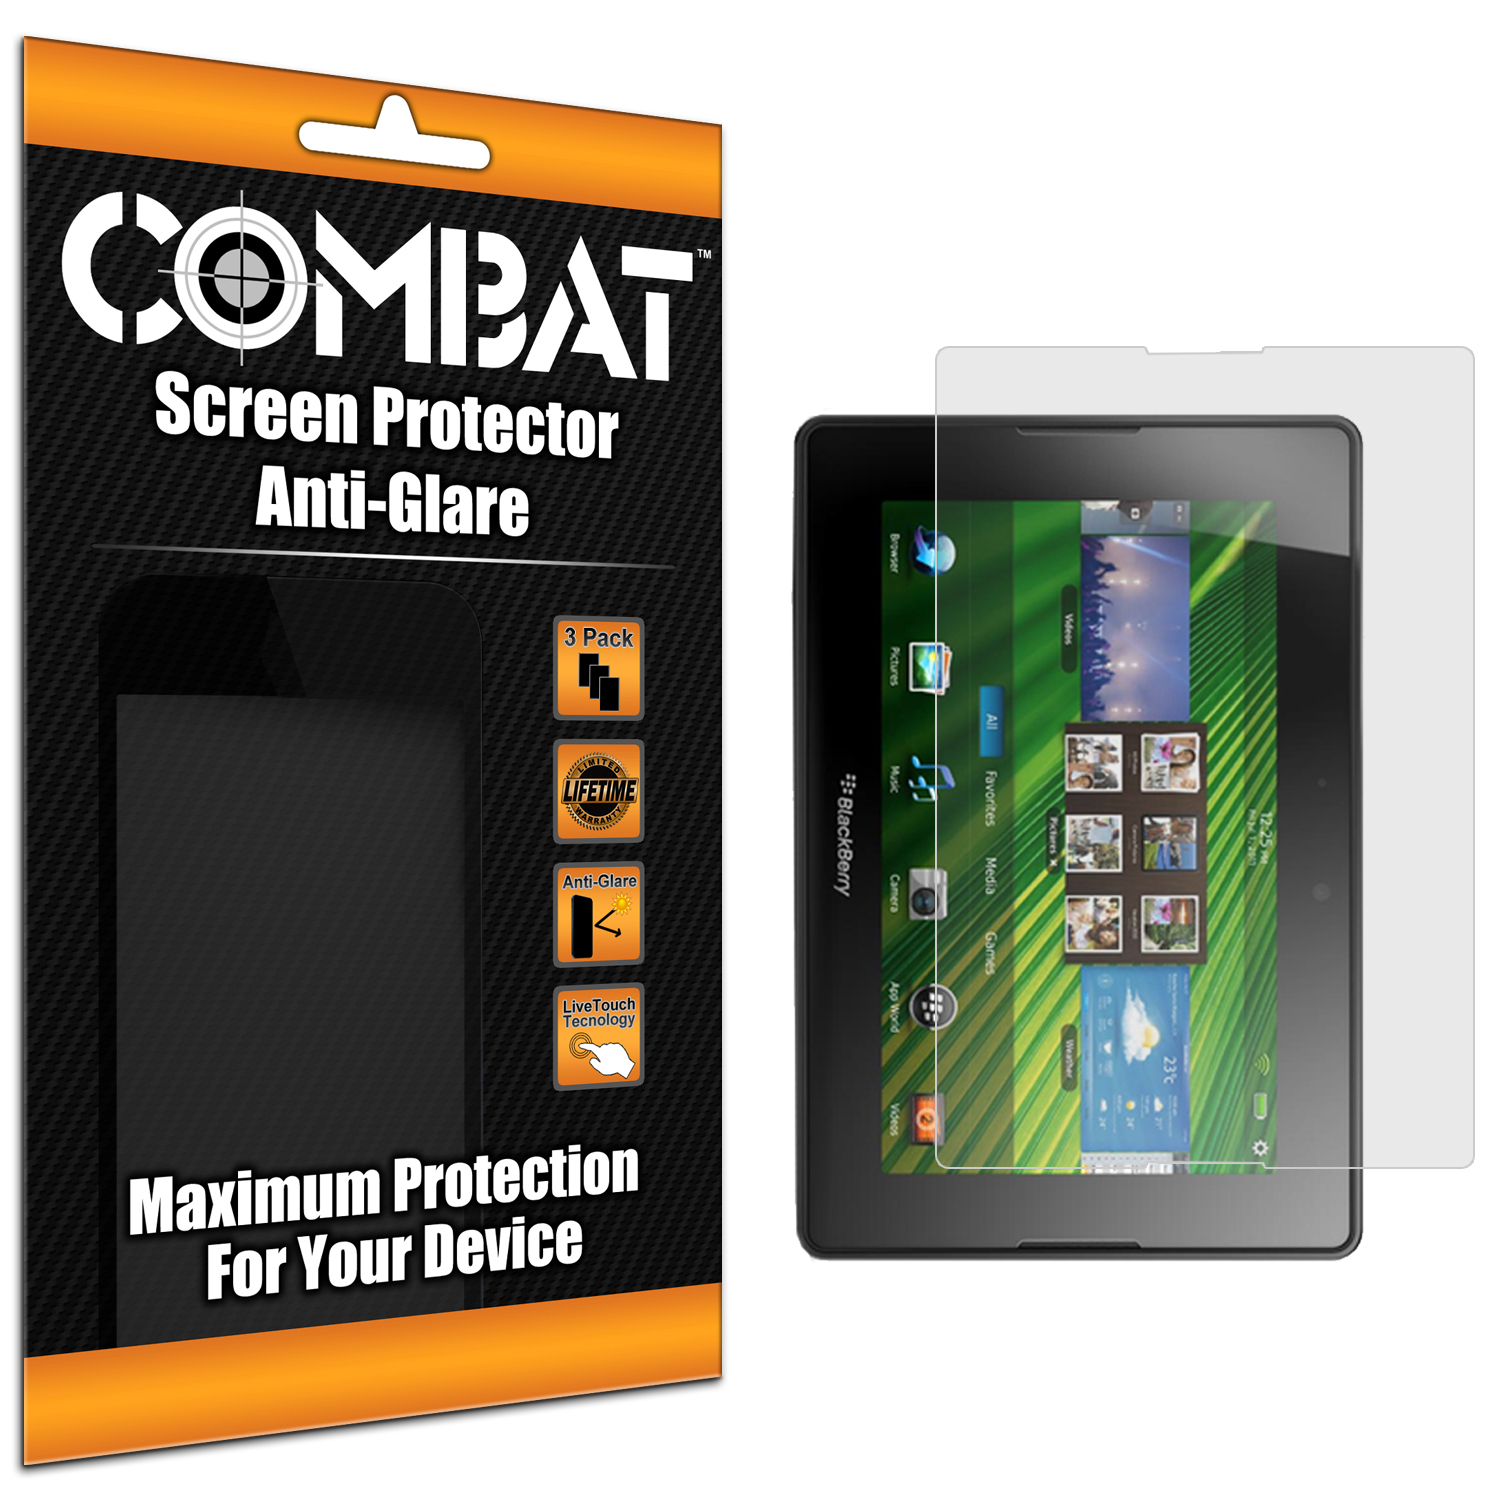 Blackberry Playbook Combat 3 Pack Anti-Glare Matte Screen Protector